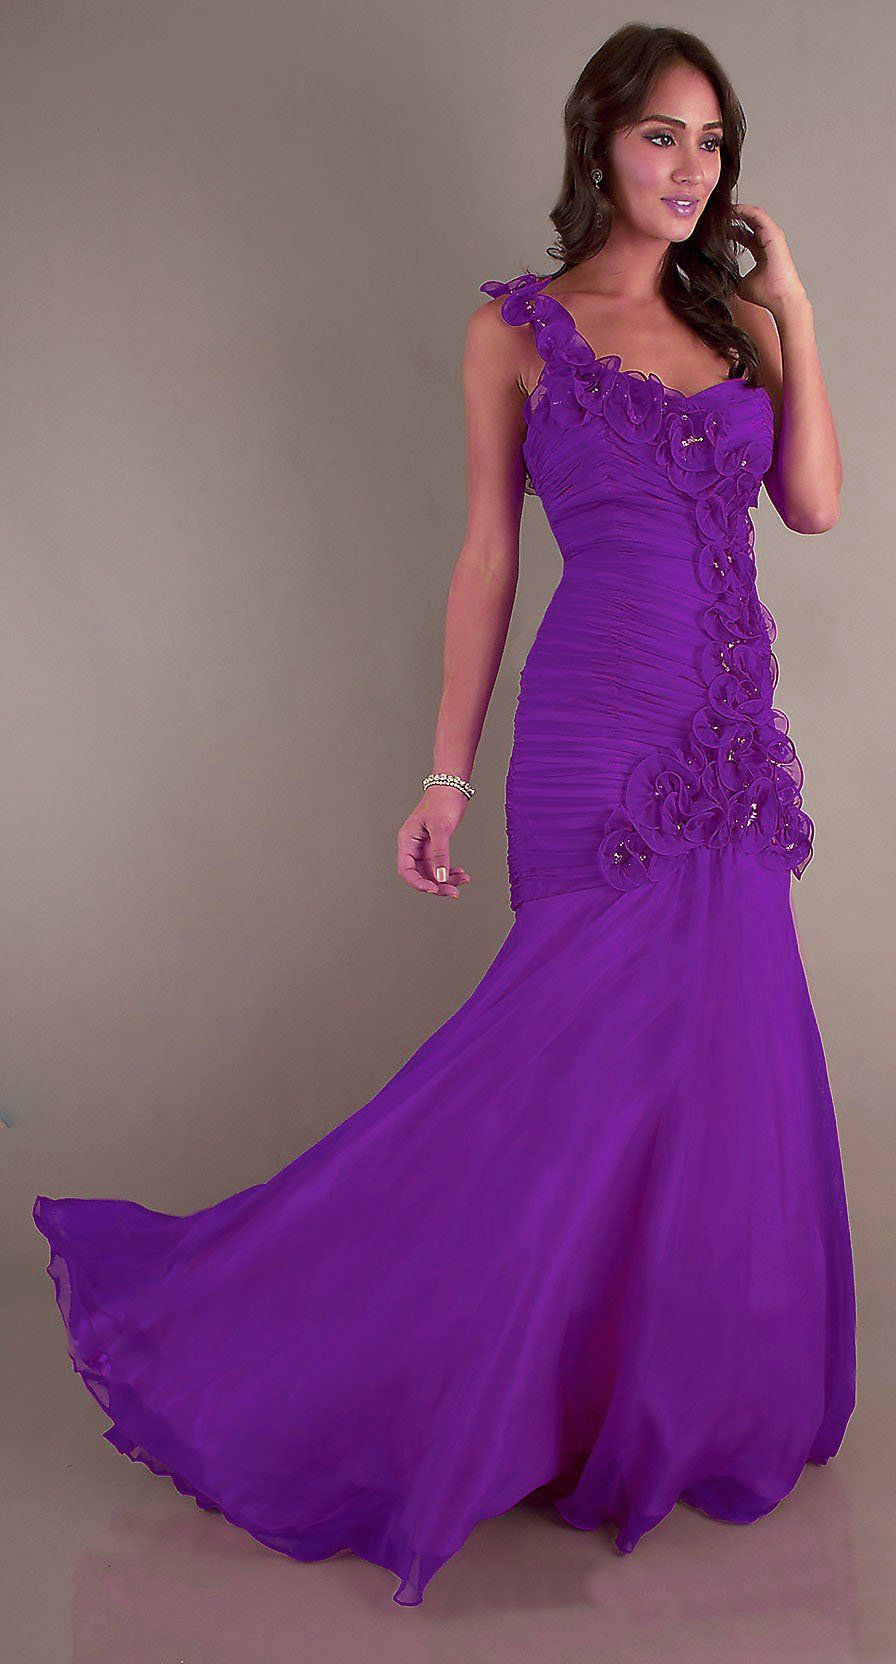 Ruched Long Formal Purple Dress One Strap Flowers Mermaid Skirt ...